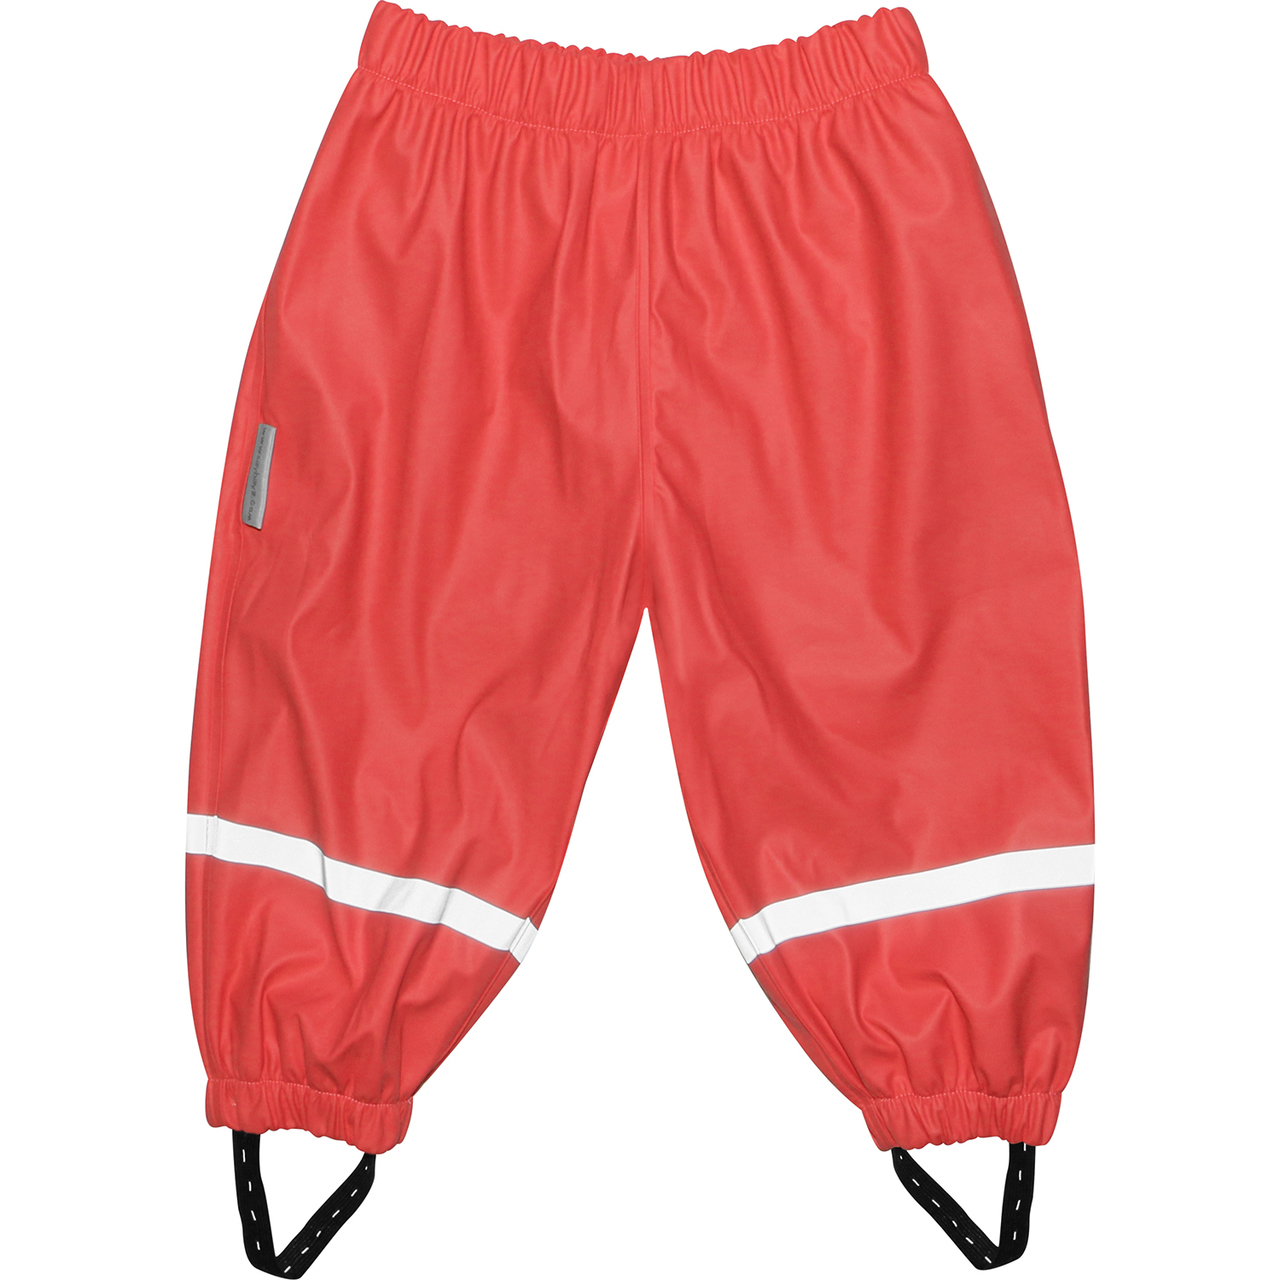 Silly Billyz Waterproof Pants - Red (2-3 Yrs) image